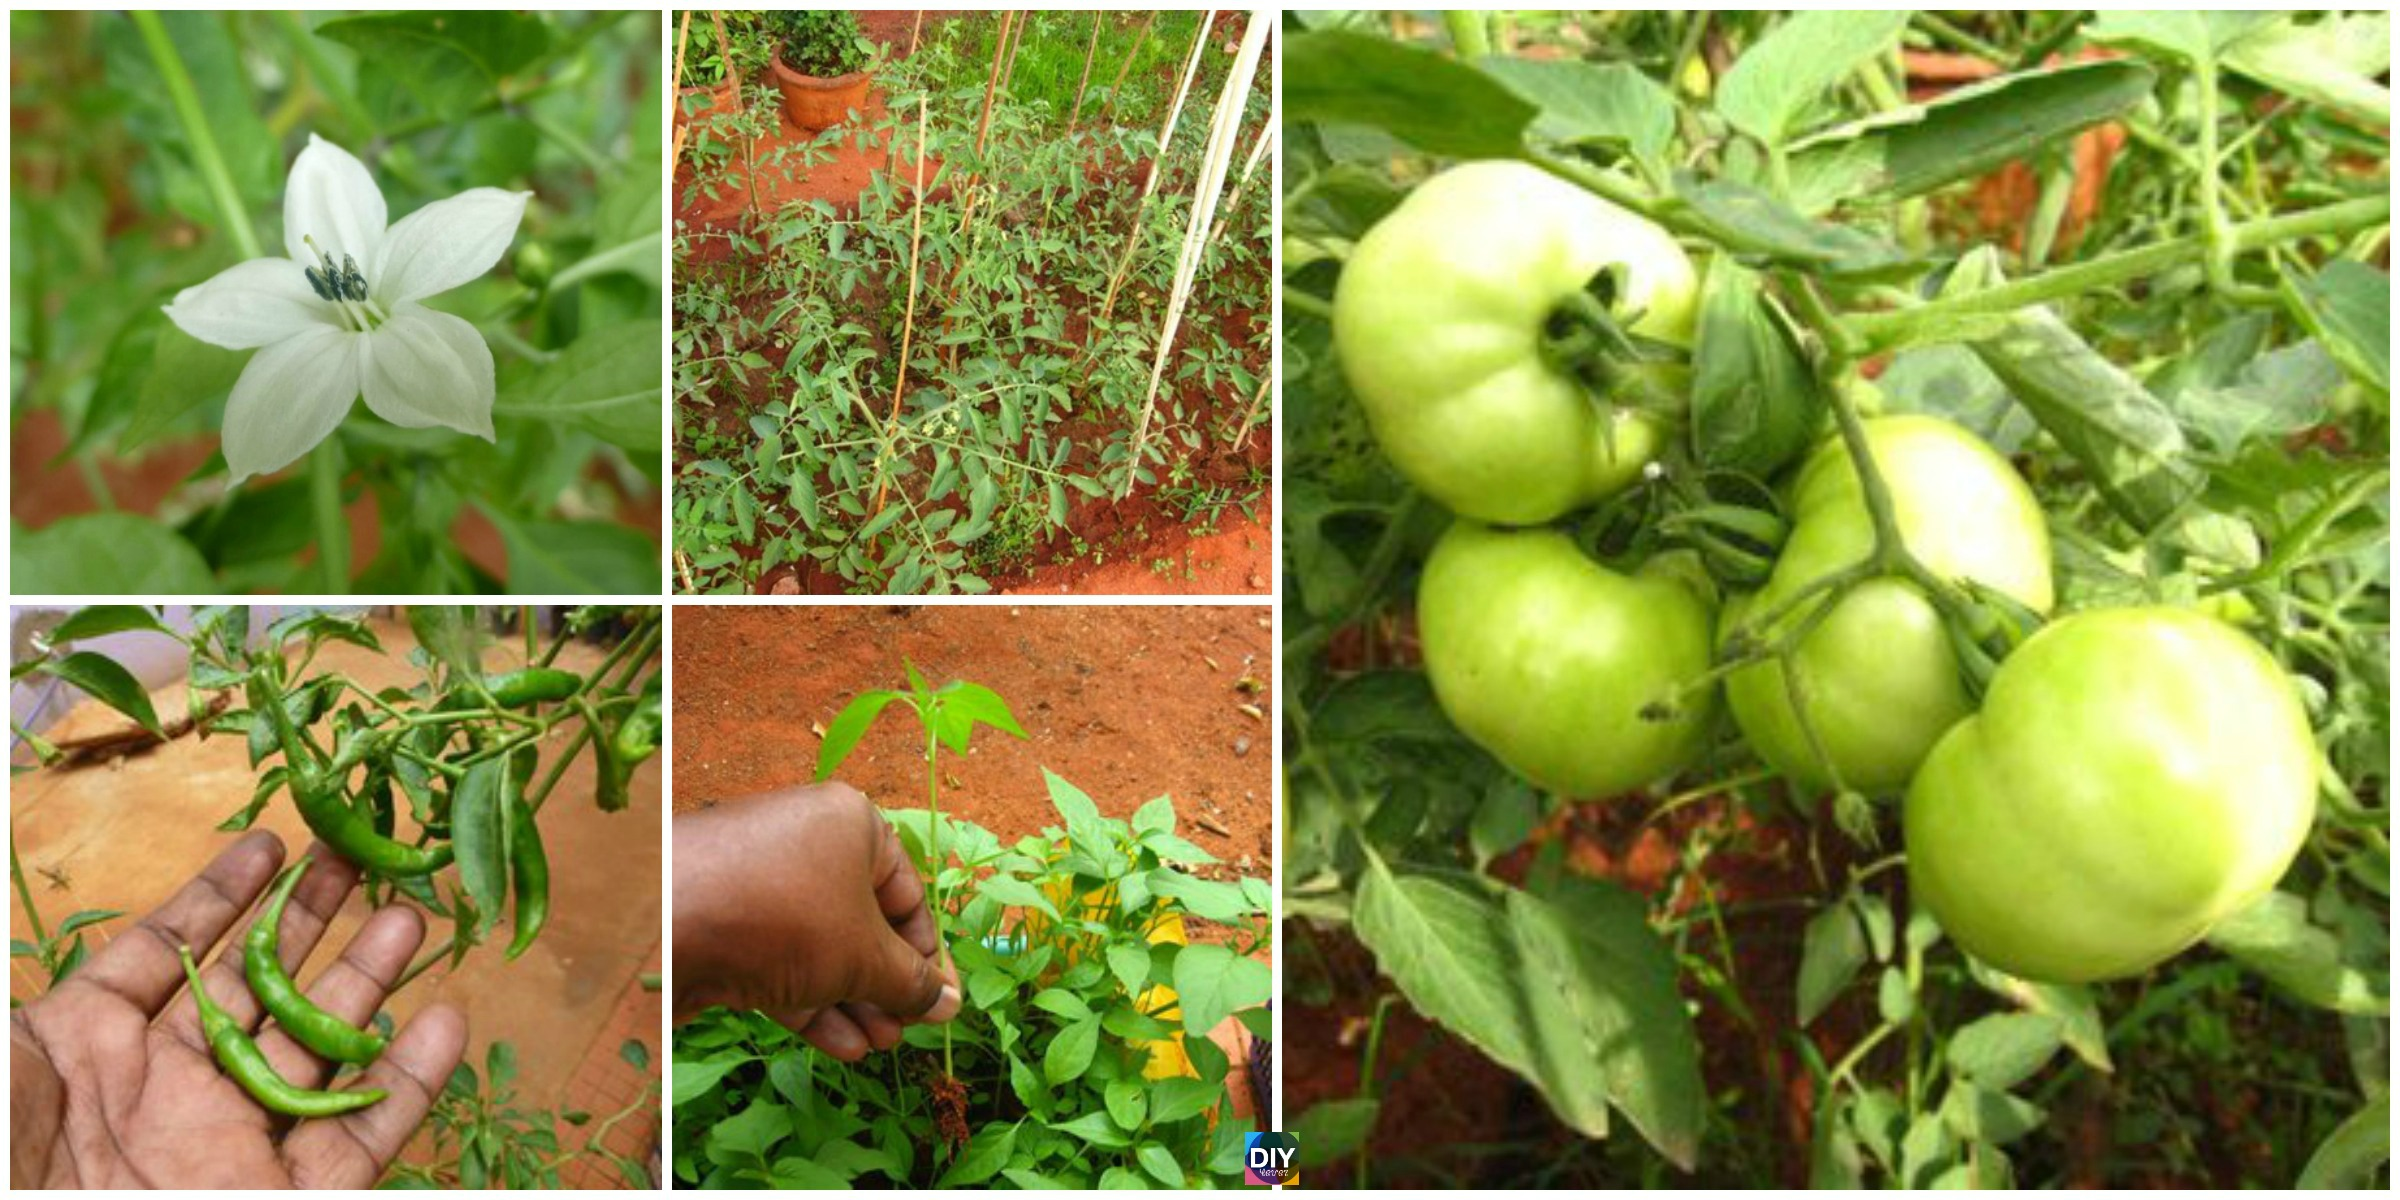 How to DIY Small Kitchen Garden in Your Backyard